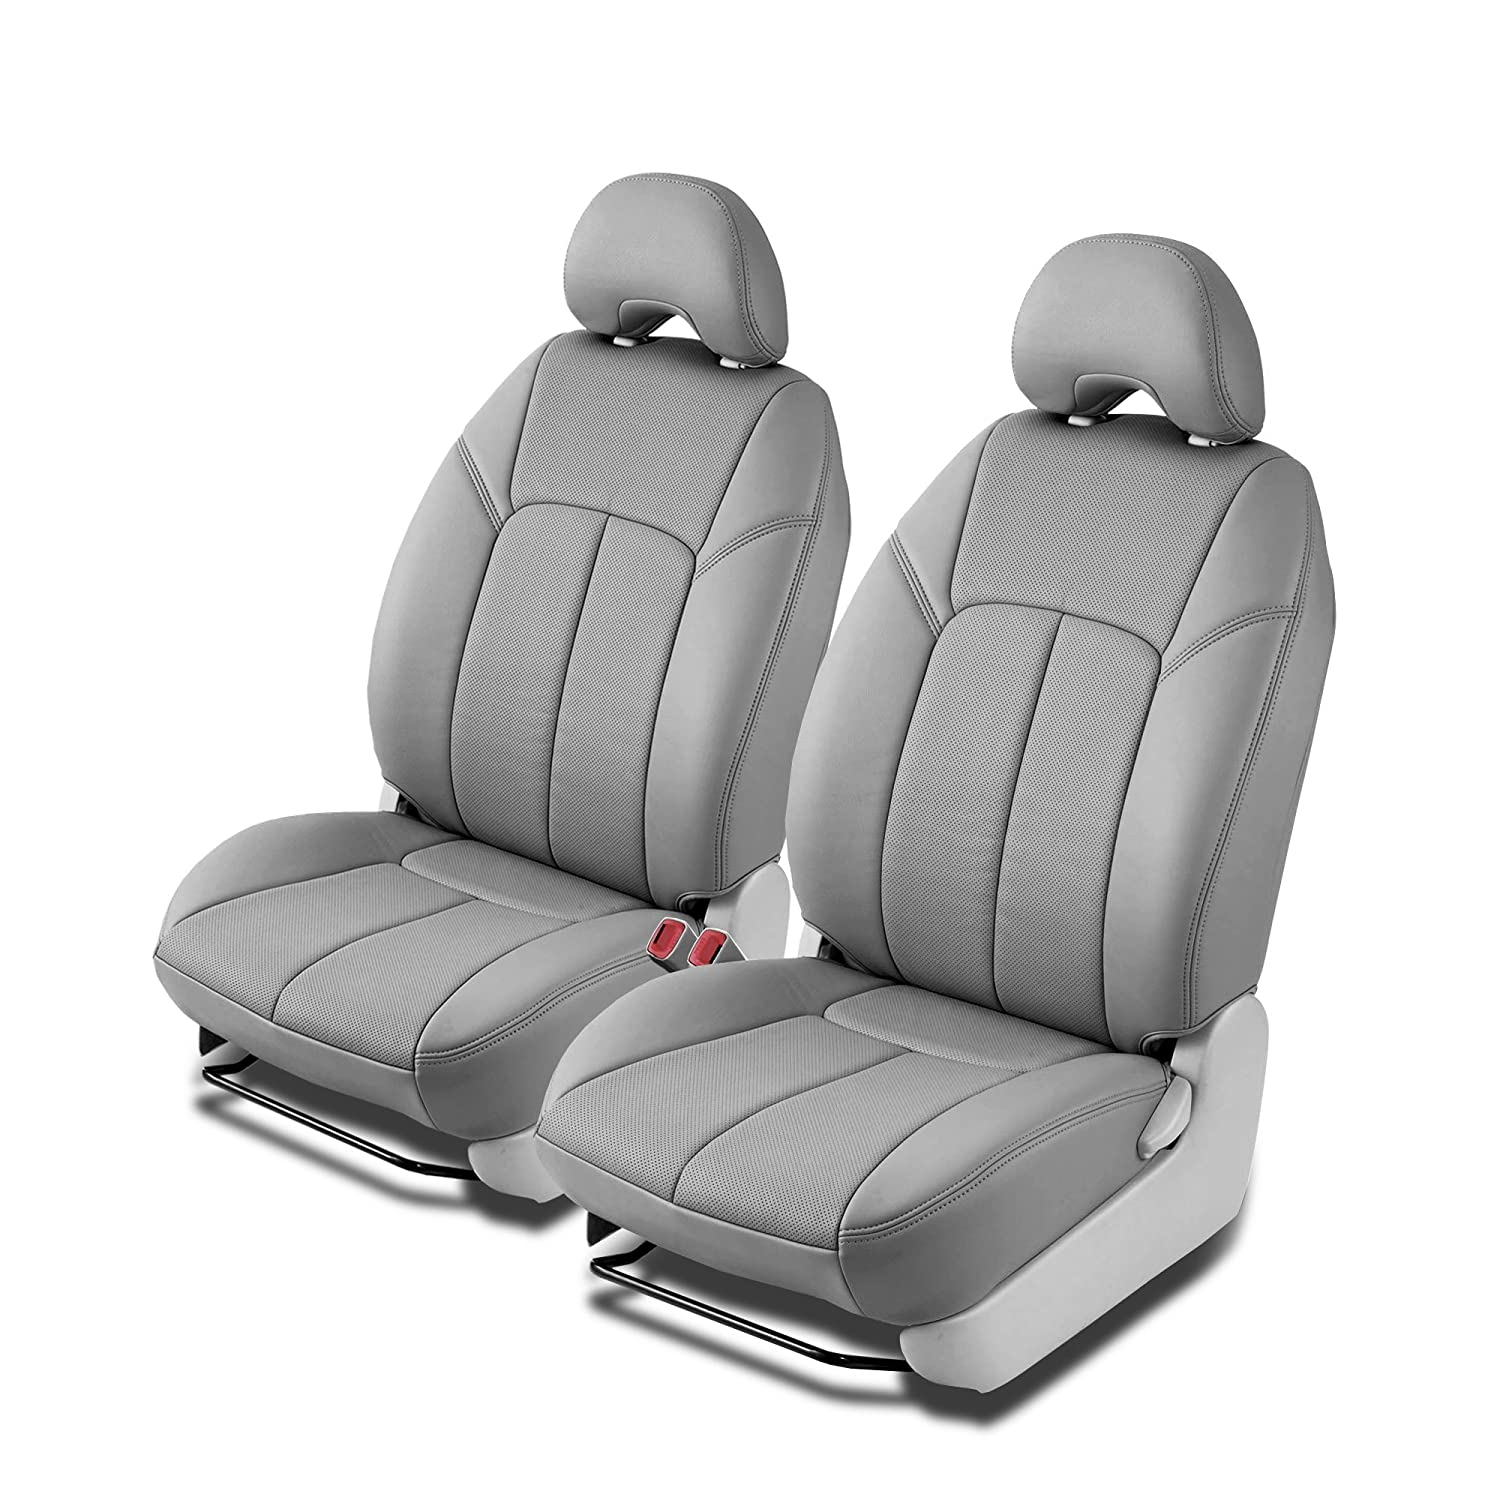 Clazzio 230541lgyy Light Grey Leather Front Row Seat Cover for Toyota Prius V